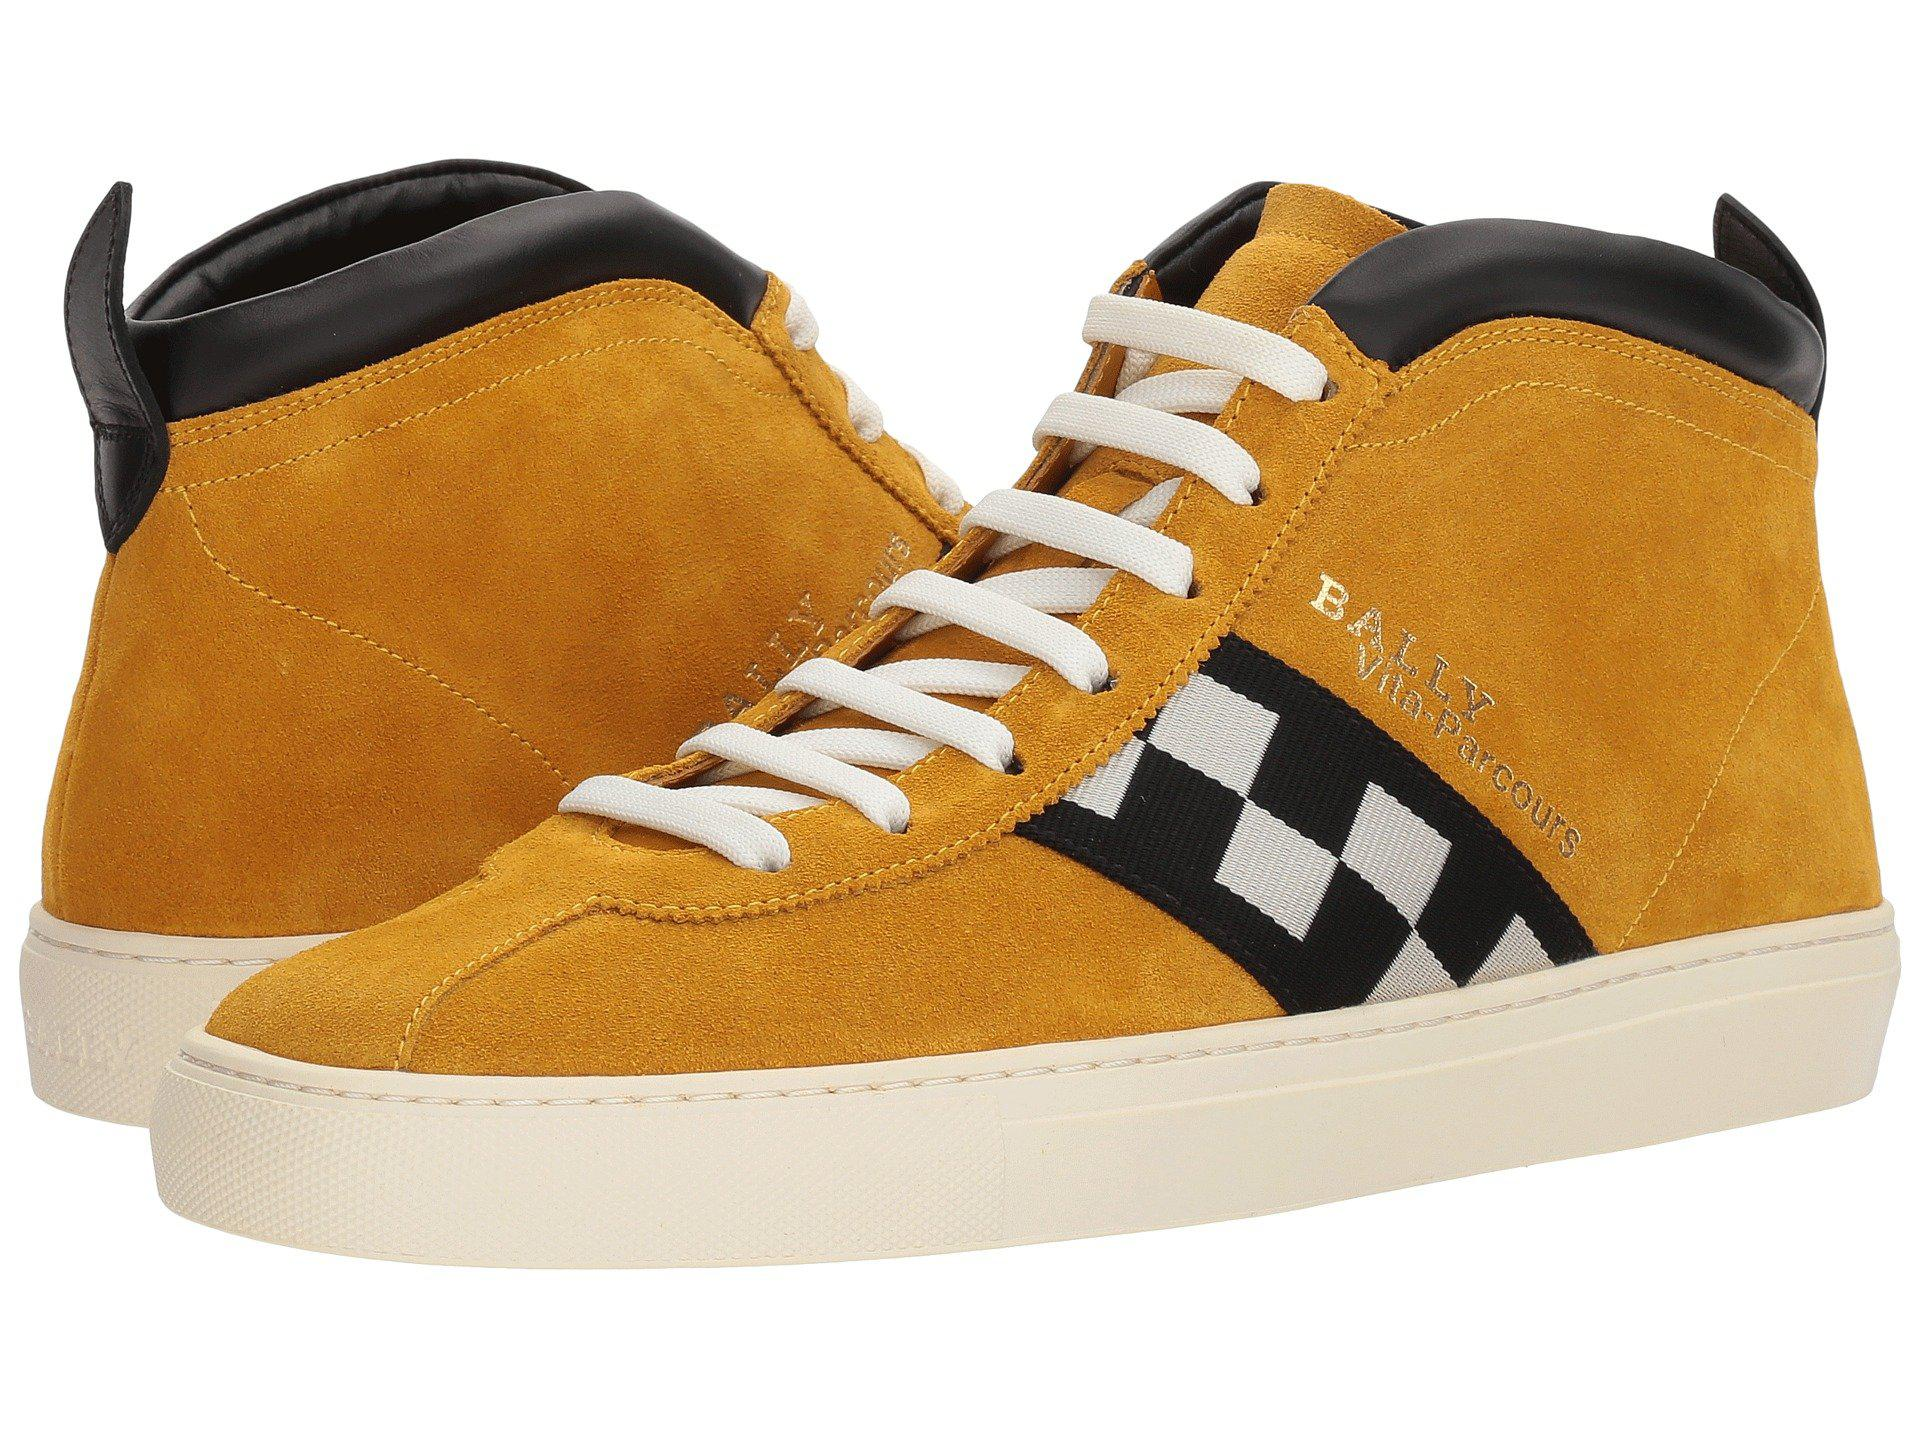 The Vita Parcours Yellow, Mens calf suede trainers in curry Bally